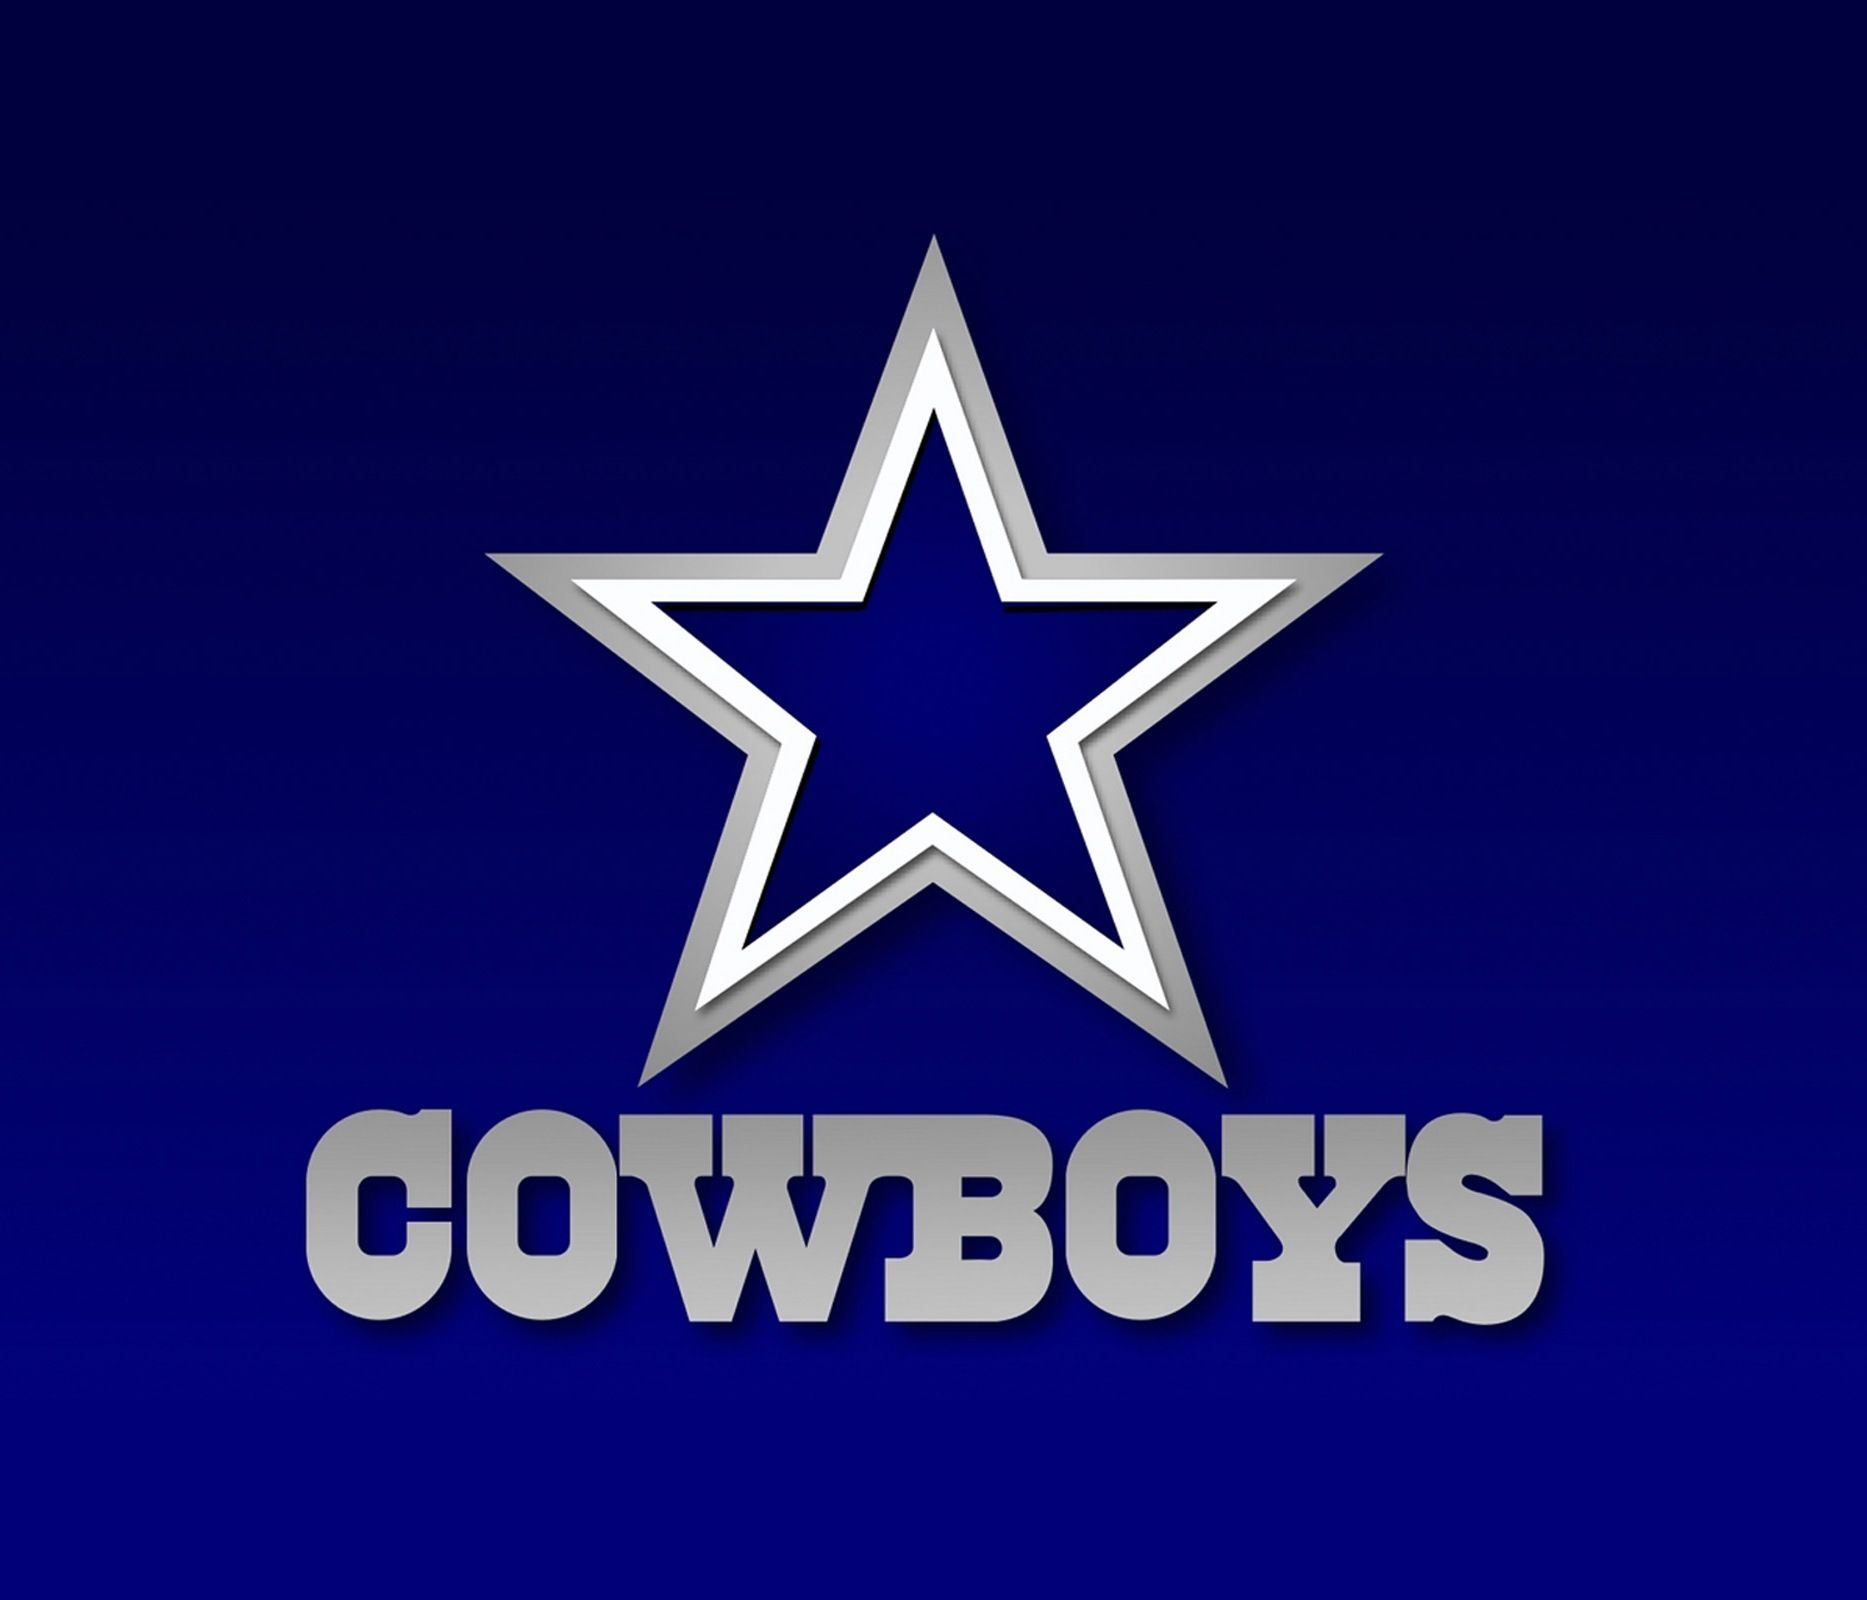 Cool Wallpaper Football Cowboys - 90016199ed0b3dbe25b3fc026e39d6ef  Perfect Image Reference_287338 .jpg